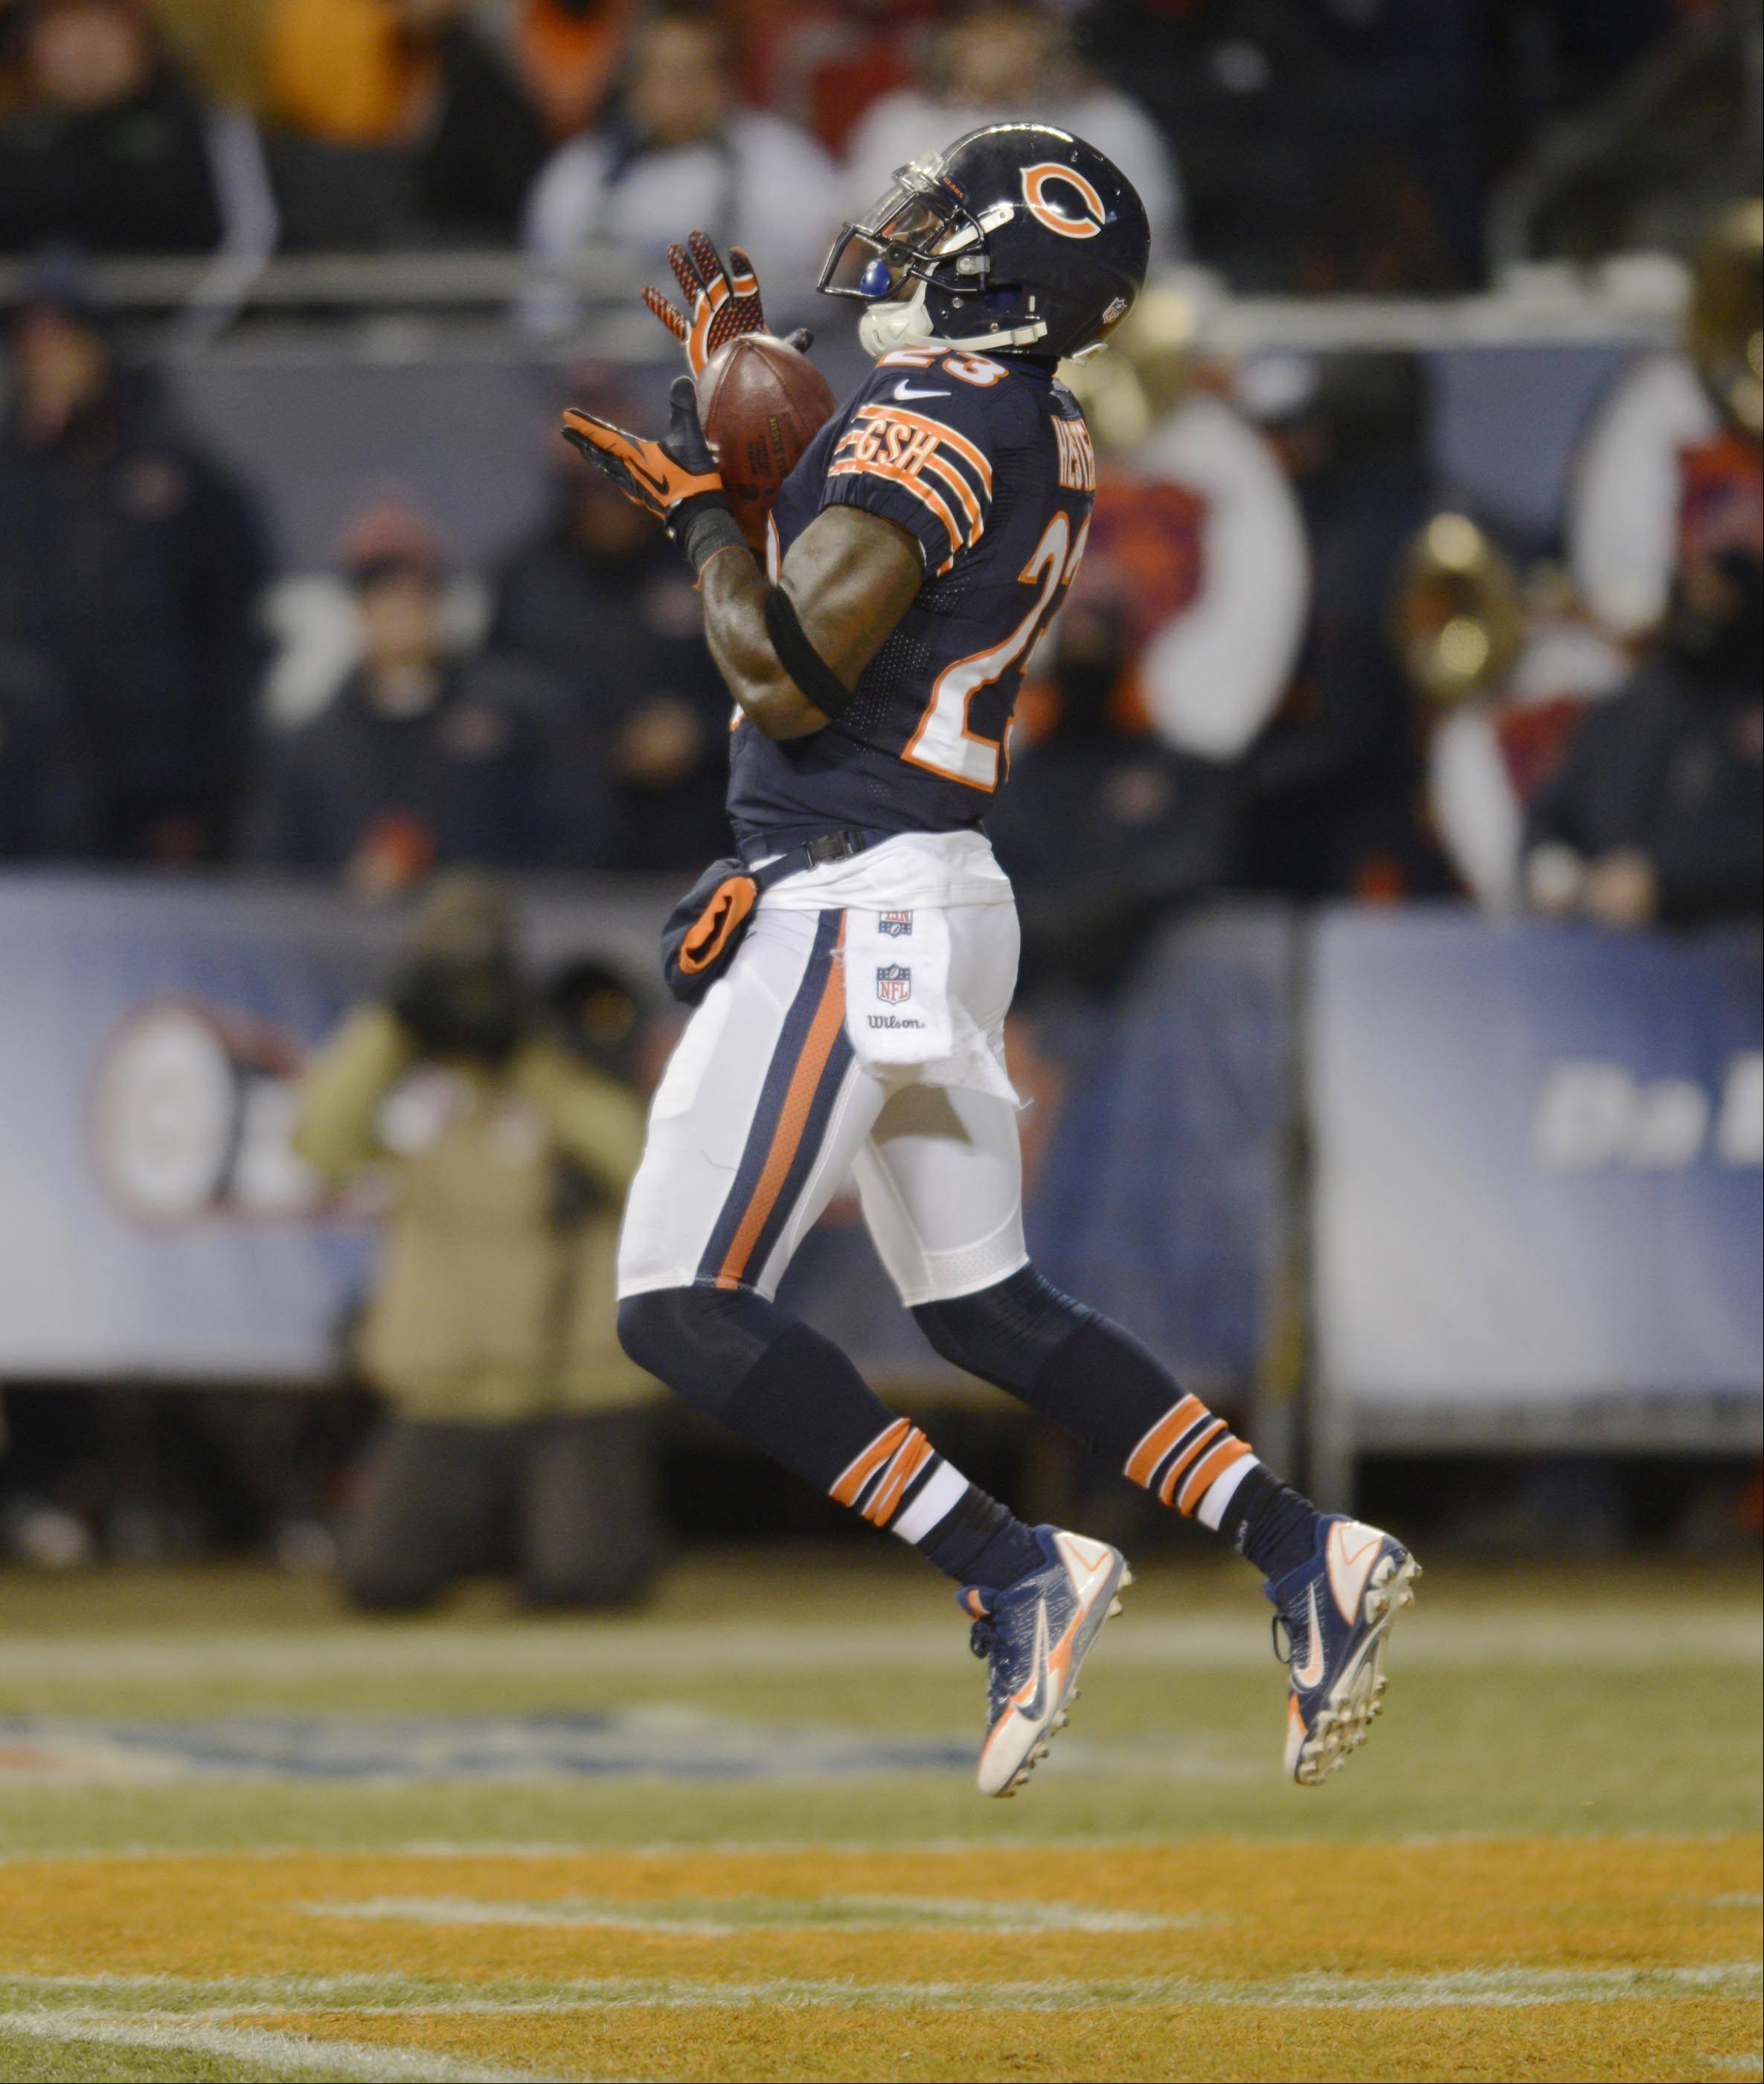 Chicago Bears kick returner Devin Hester makes a catch on a second-half Dallas kick.